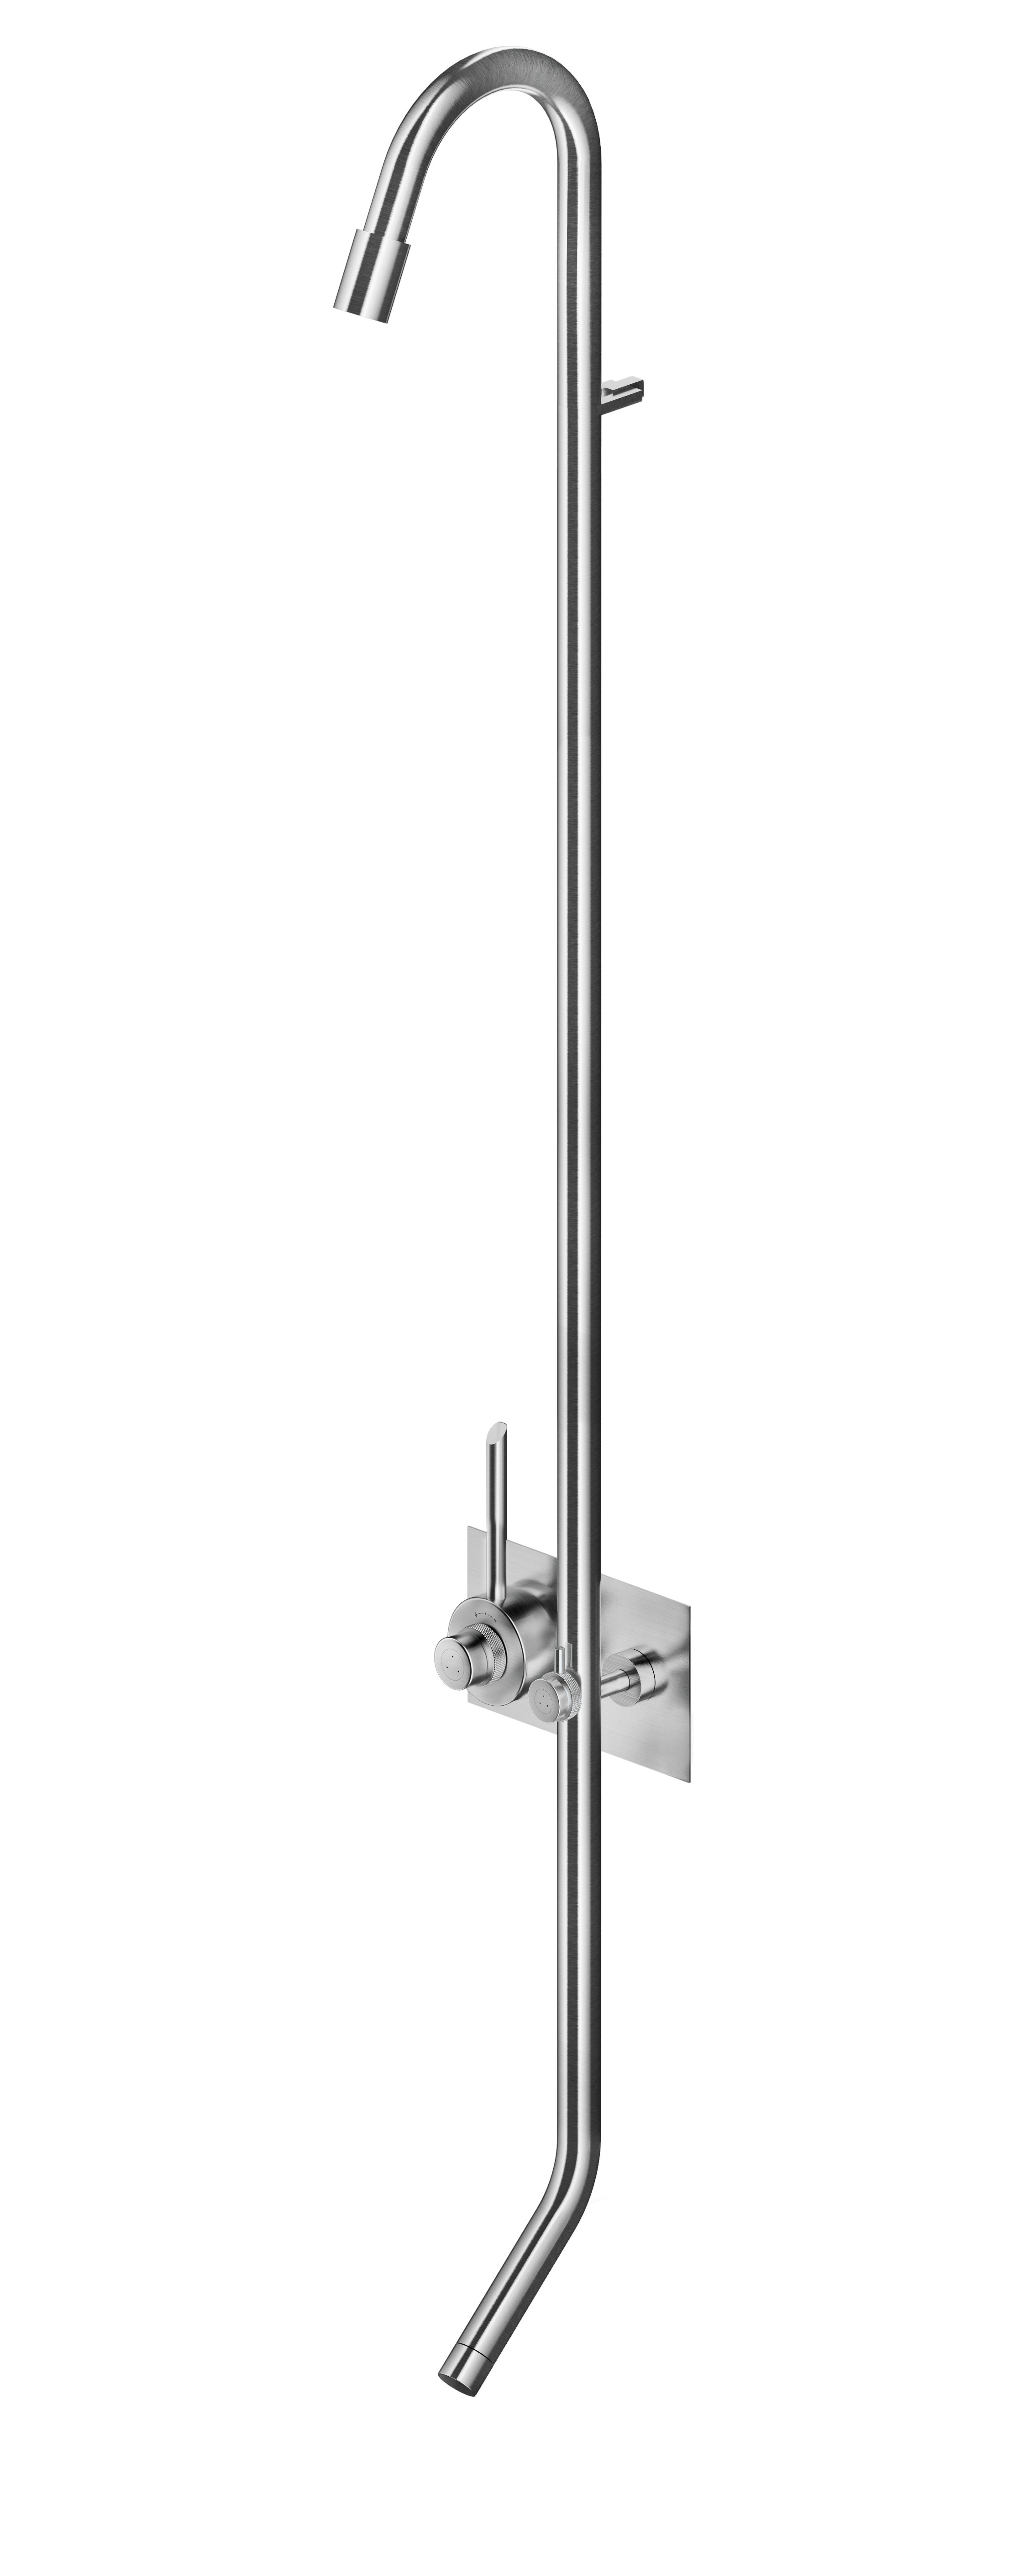 MGS CB447 Thermostatic Shower Column with Foot Wash - matte stainless